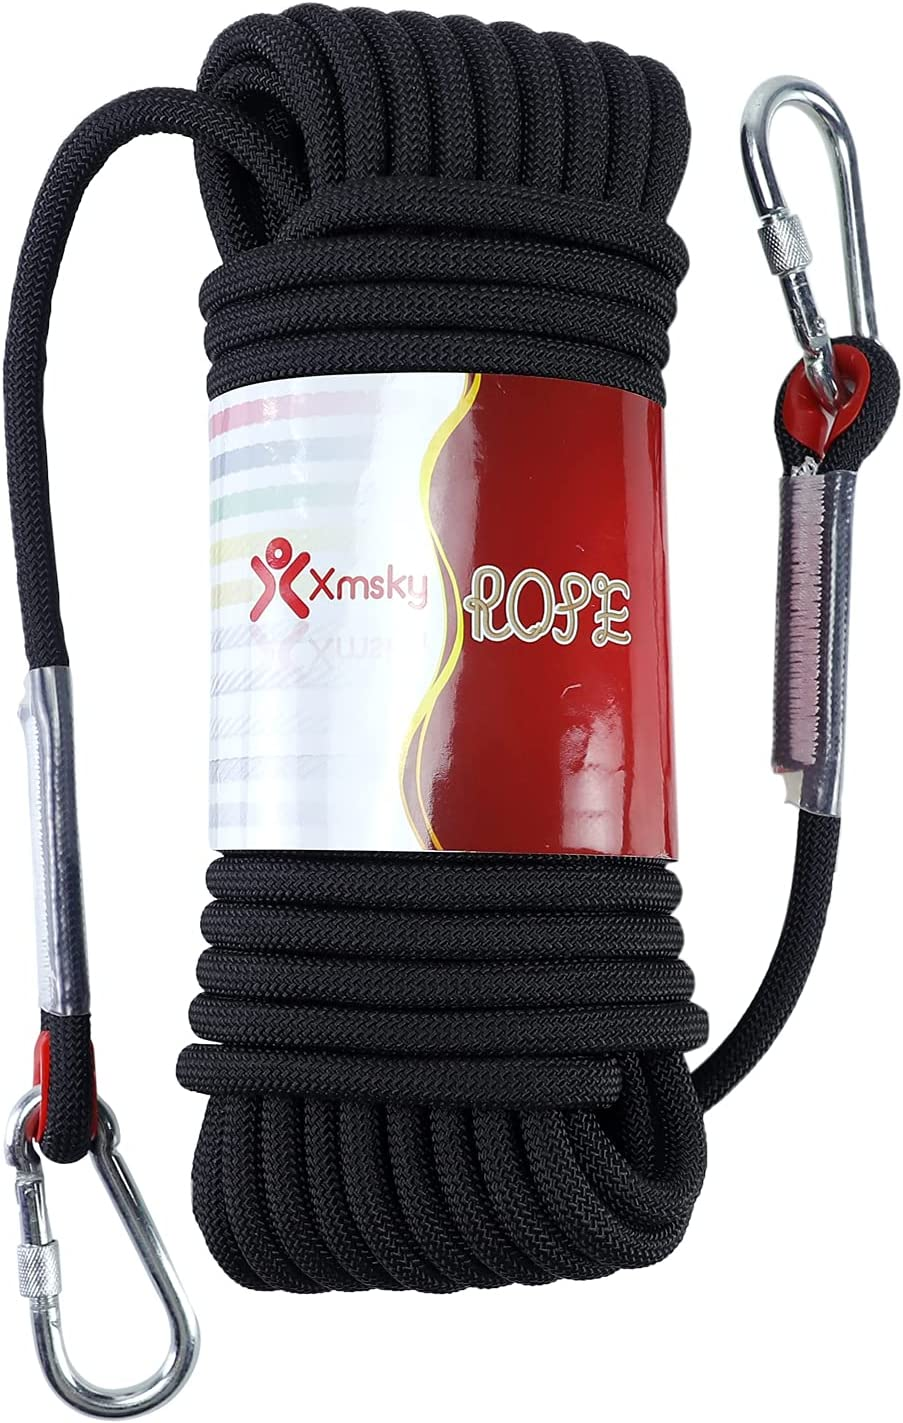 XMSKY Climbing Reservation Rope 12mm Rock Rugged Static NEW before selling Outdoo